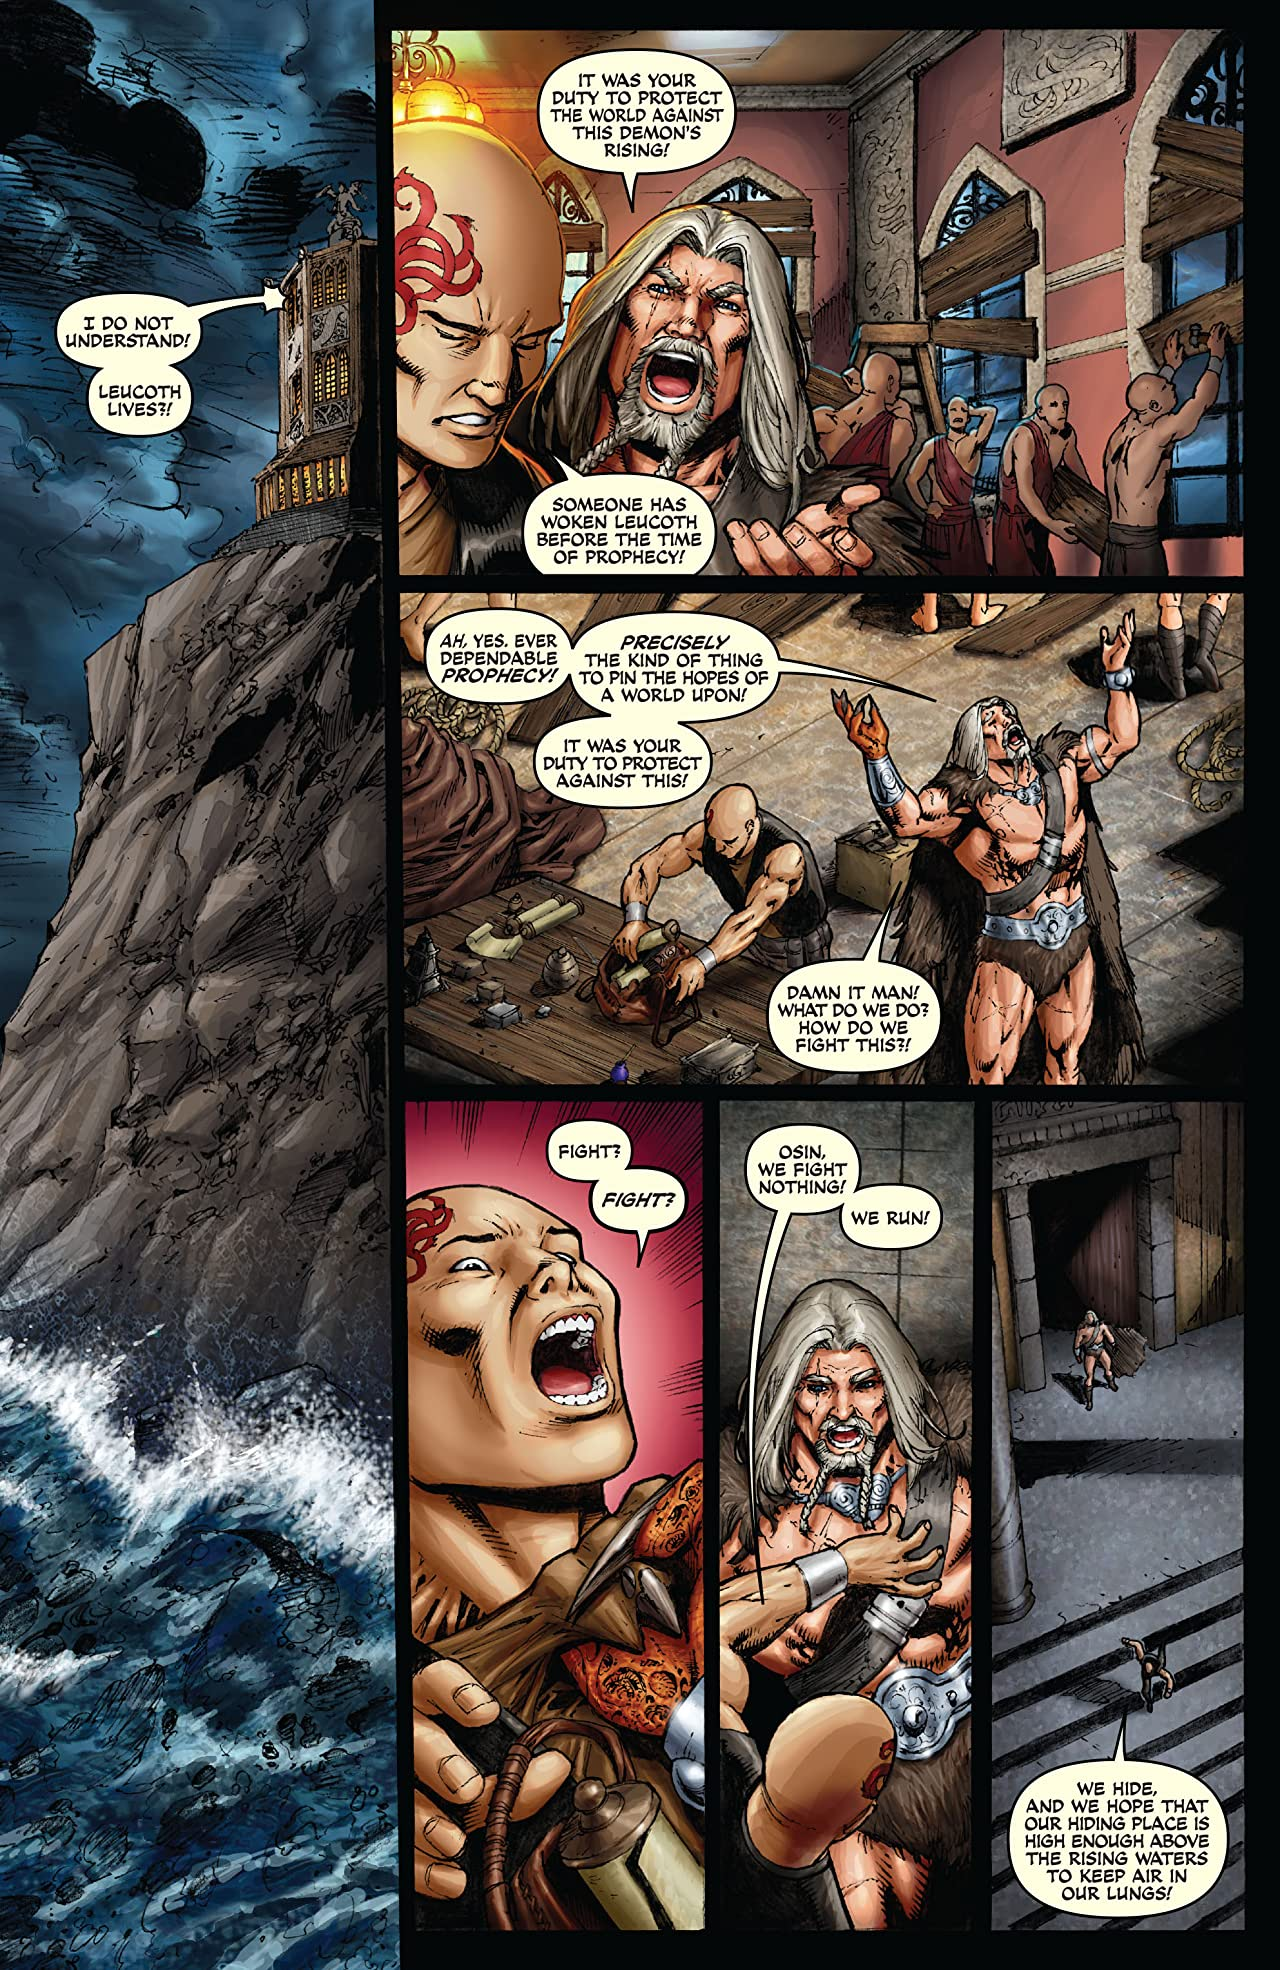 Red Sonja: She-Devil With a Sword #43